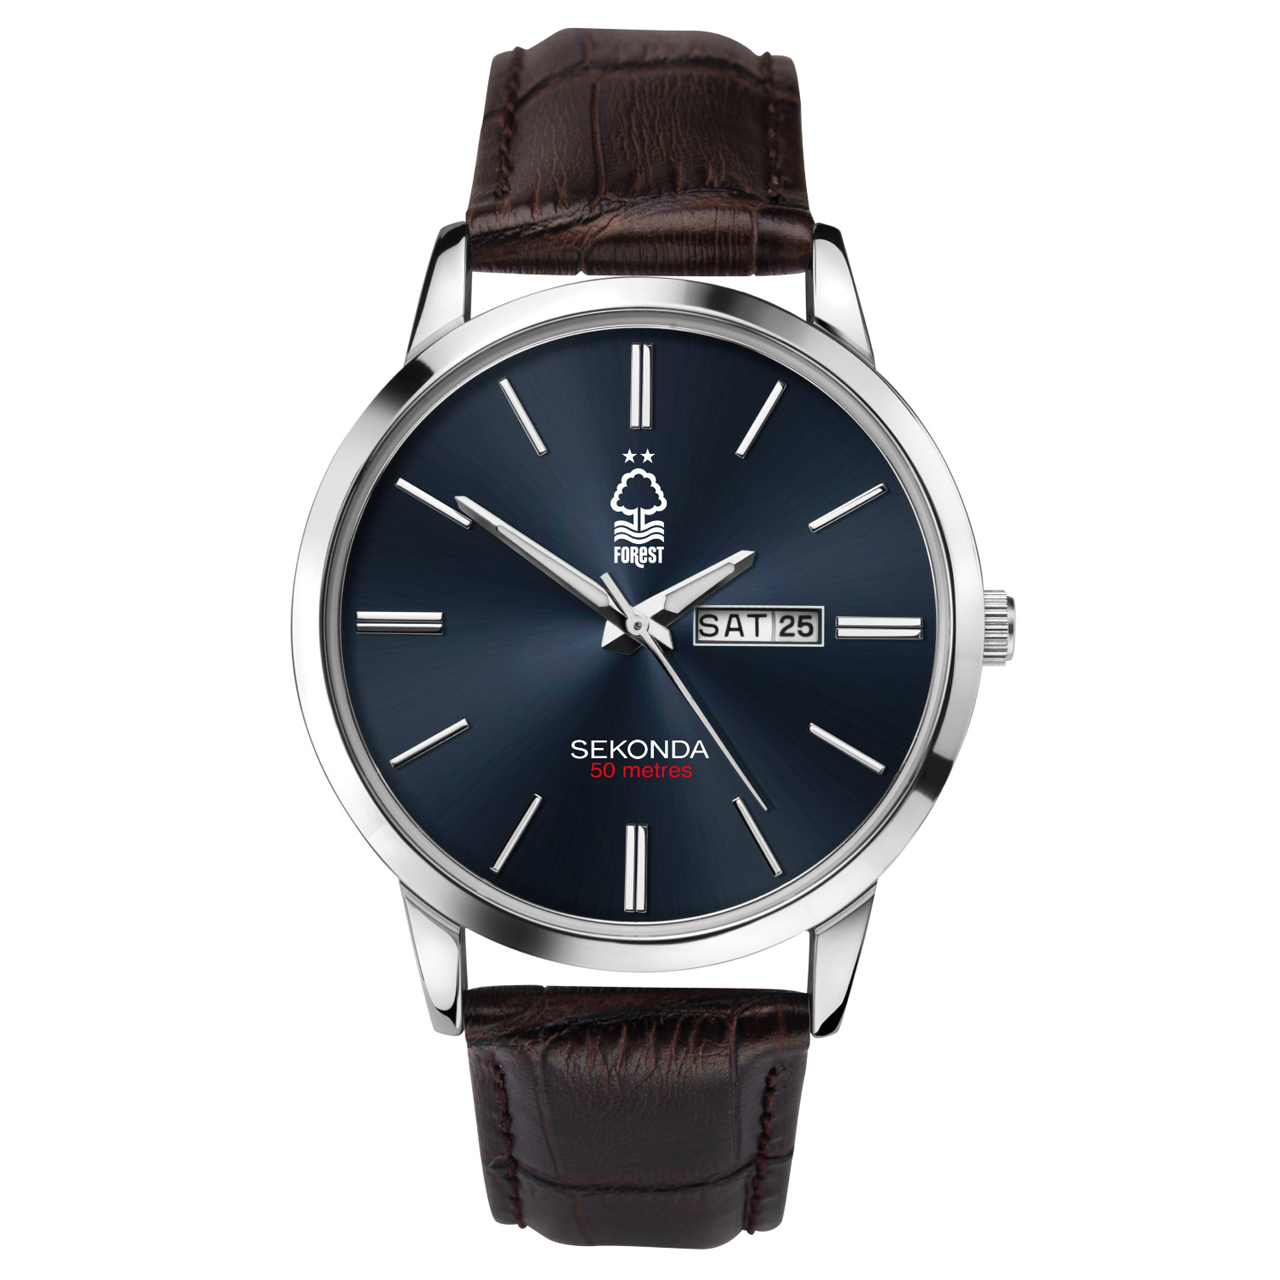 NFFC Sekonda Leather Strap Watch